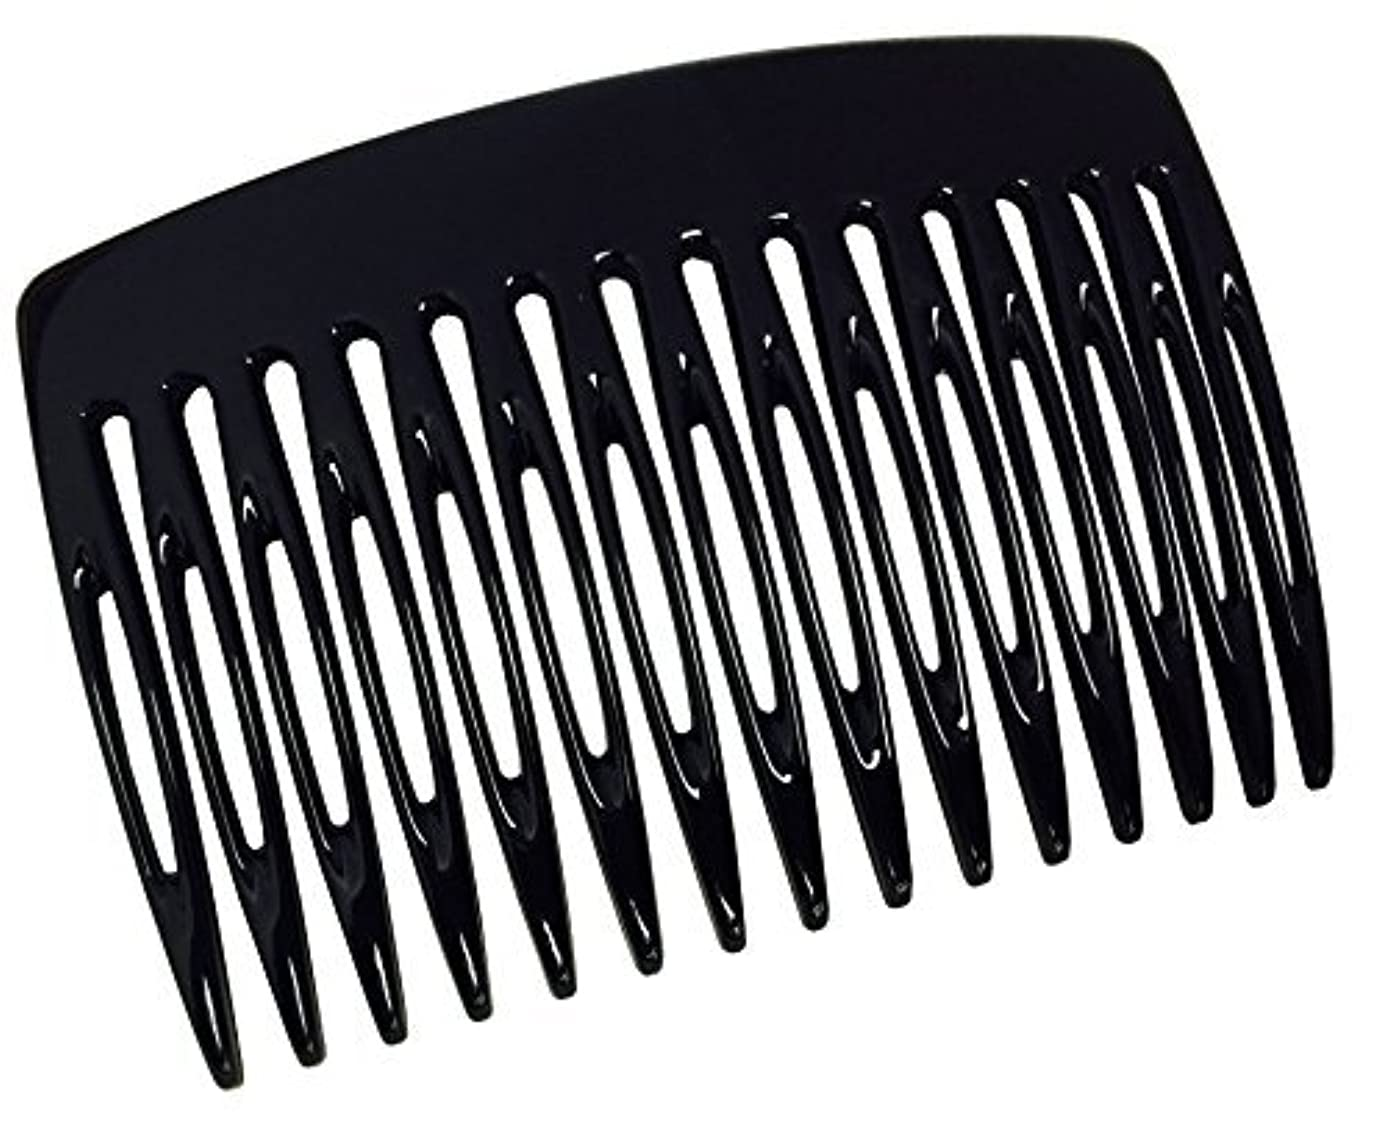 複製管理富Parcelona French Nice N Simple 2 Pieces Cellulose Acetate Glossy Black 7 Cm Side Hair Comb Combs [並行輸入品]